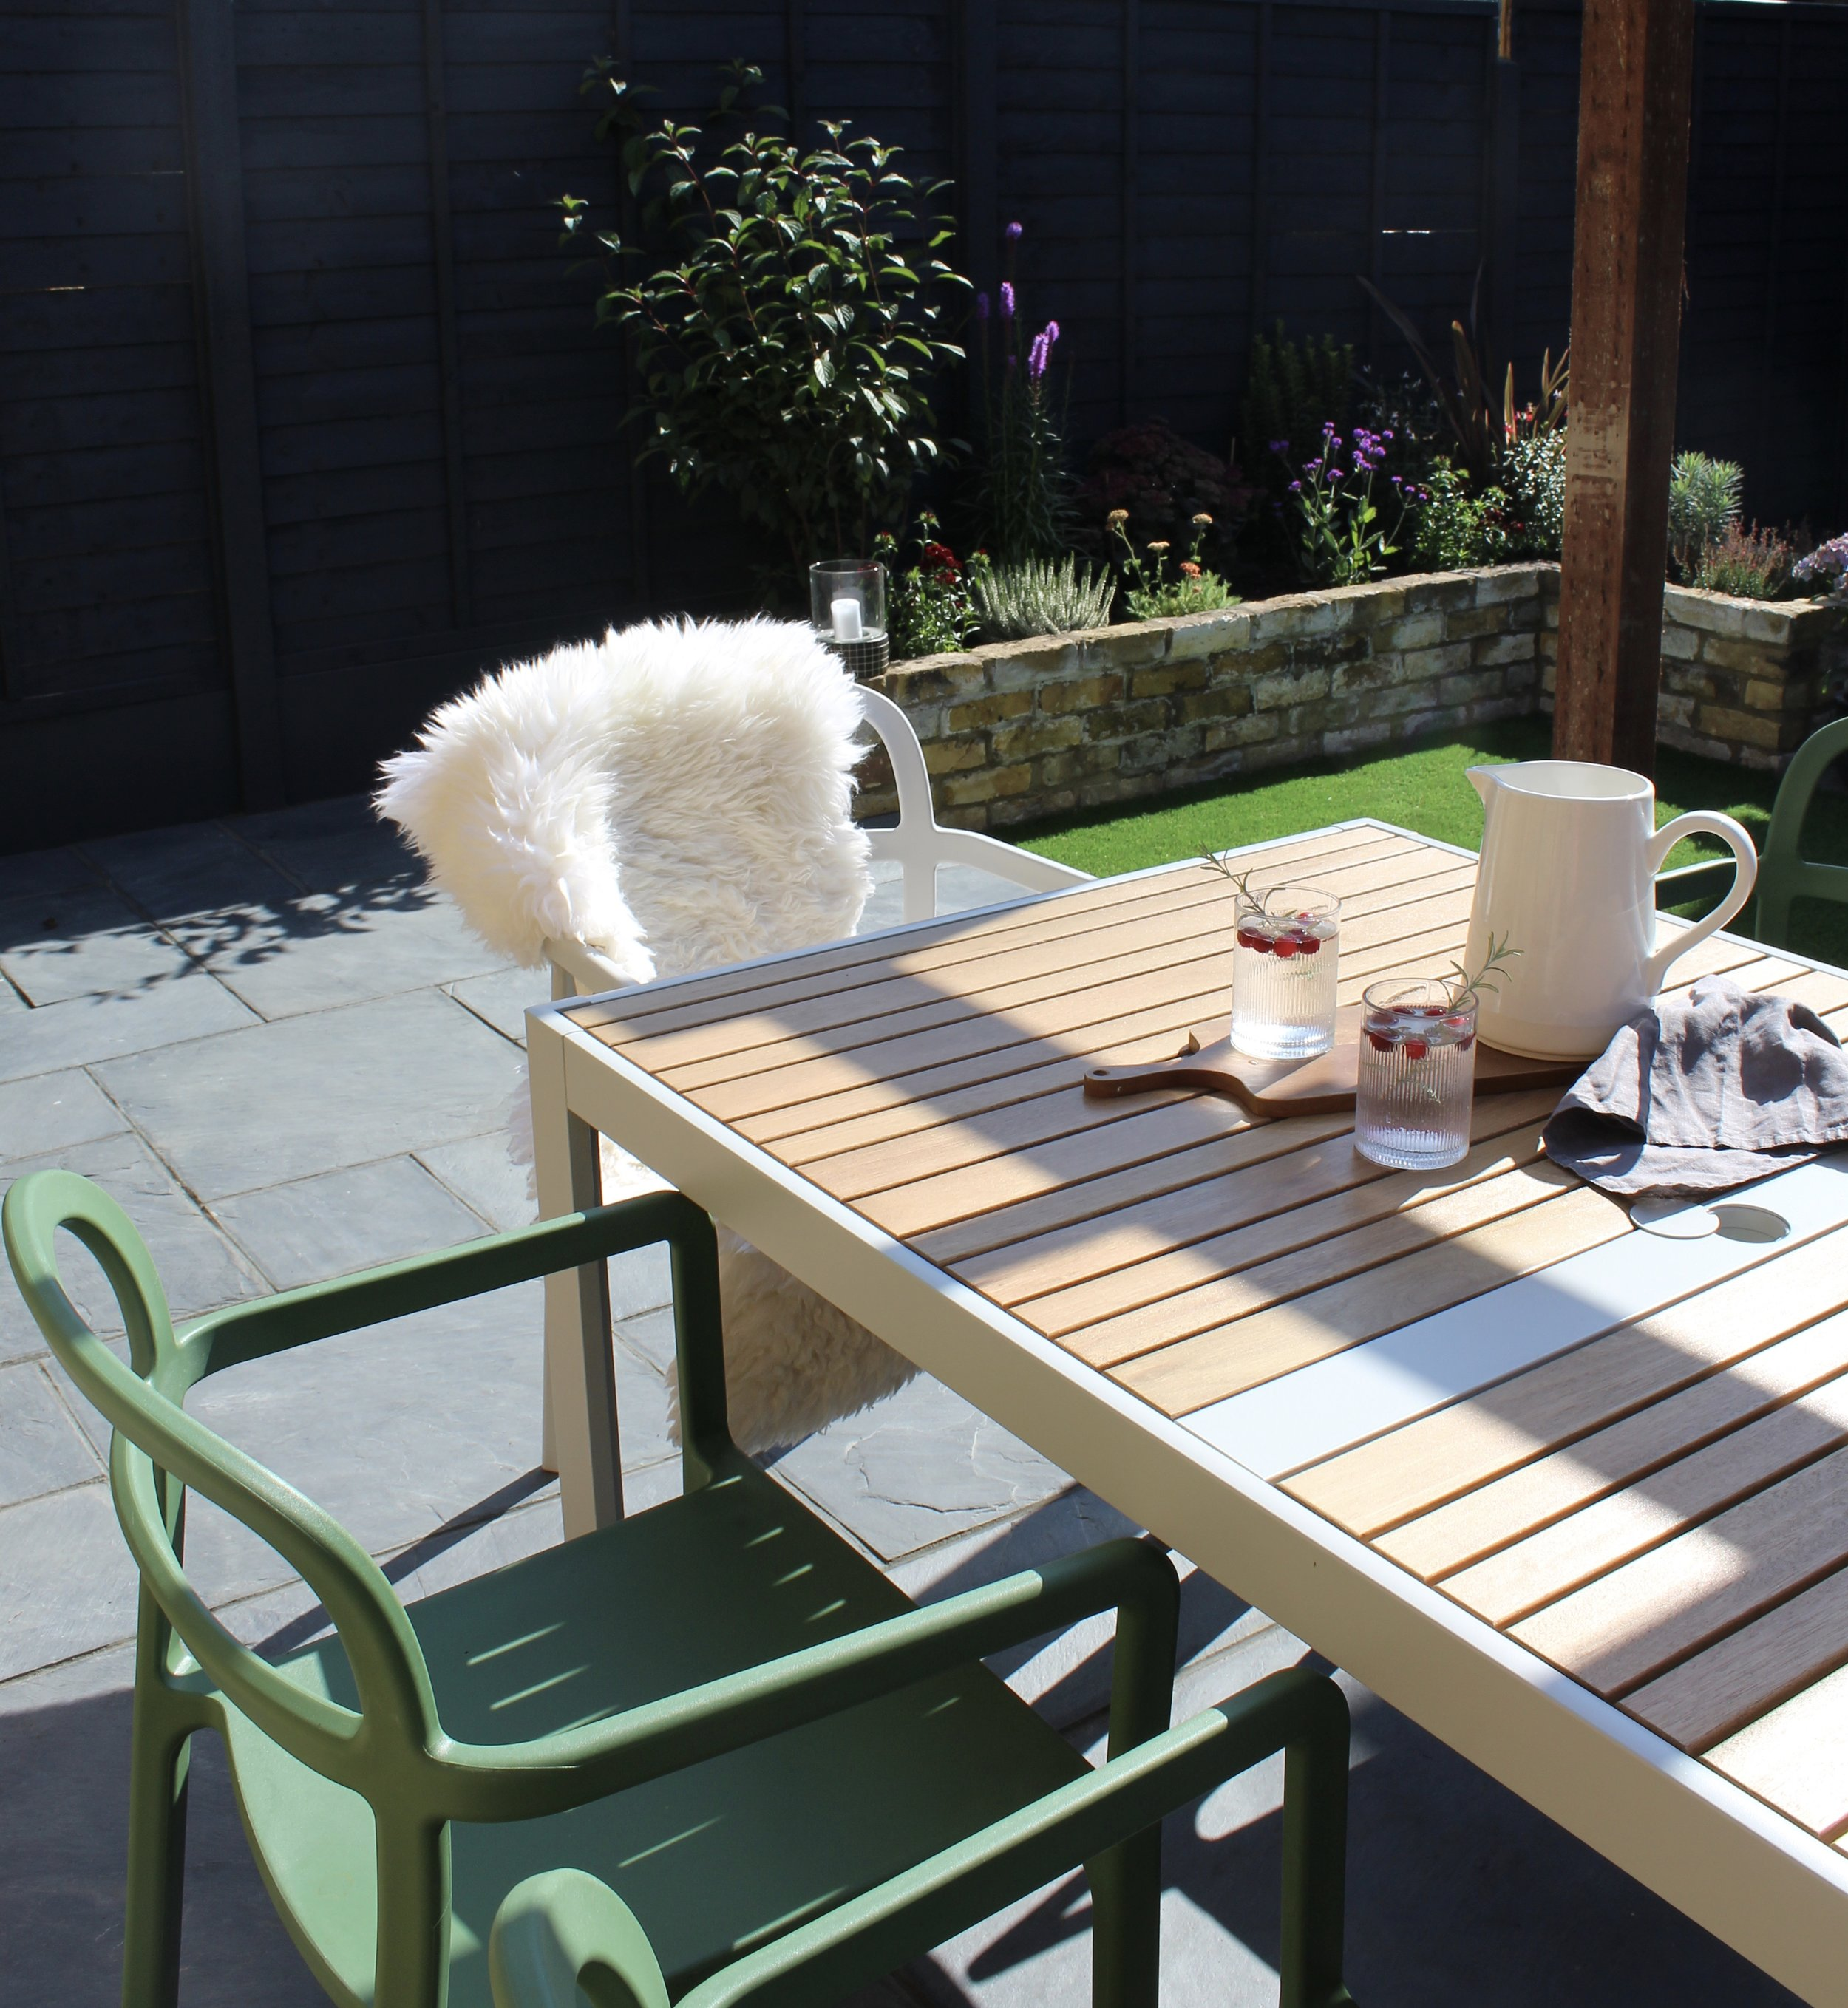 Garden furniture is from  Ikea  (chairs part of the recent collaboration with Hay)